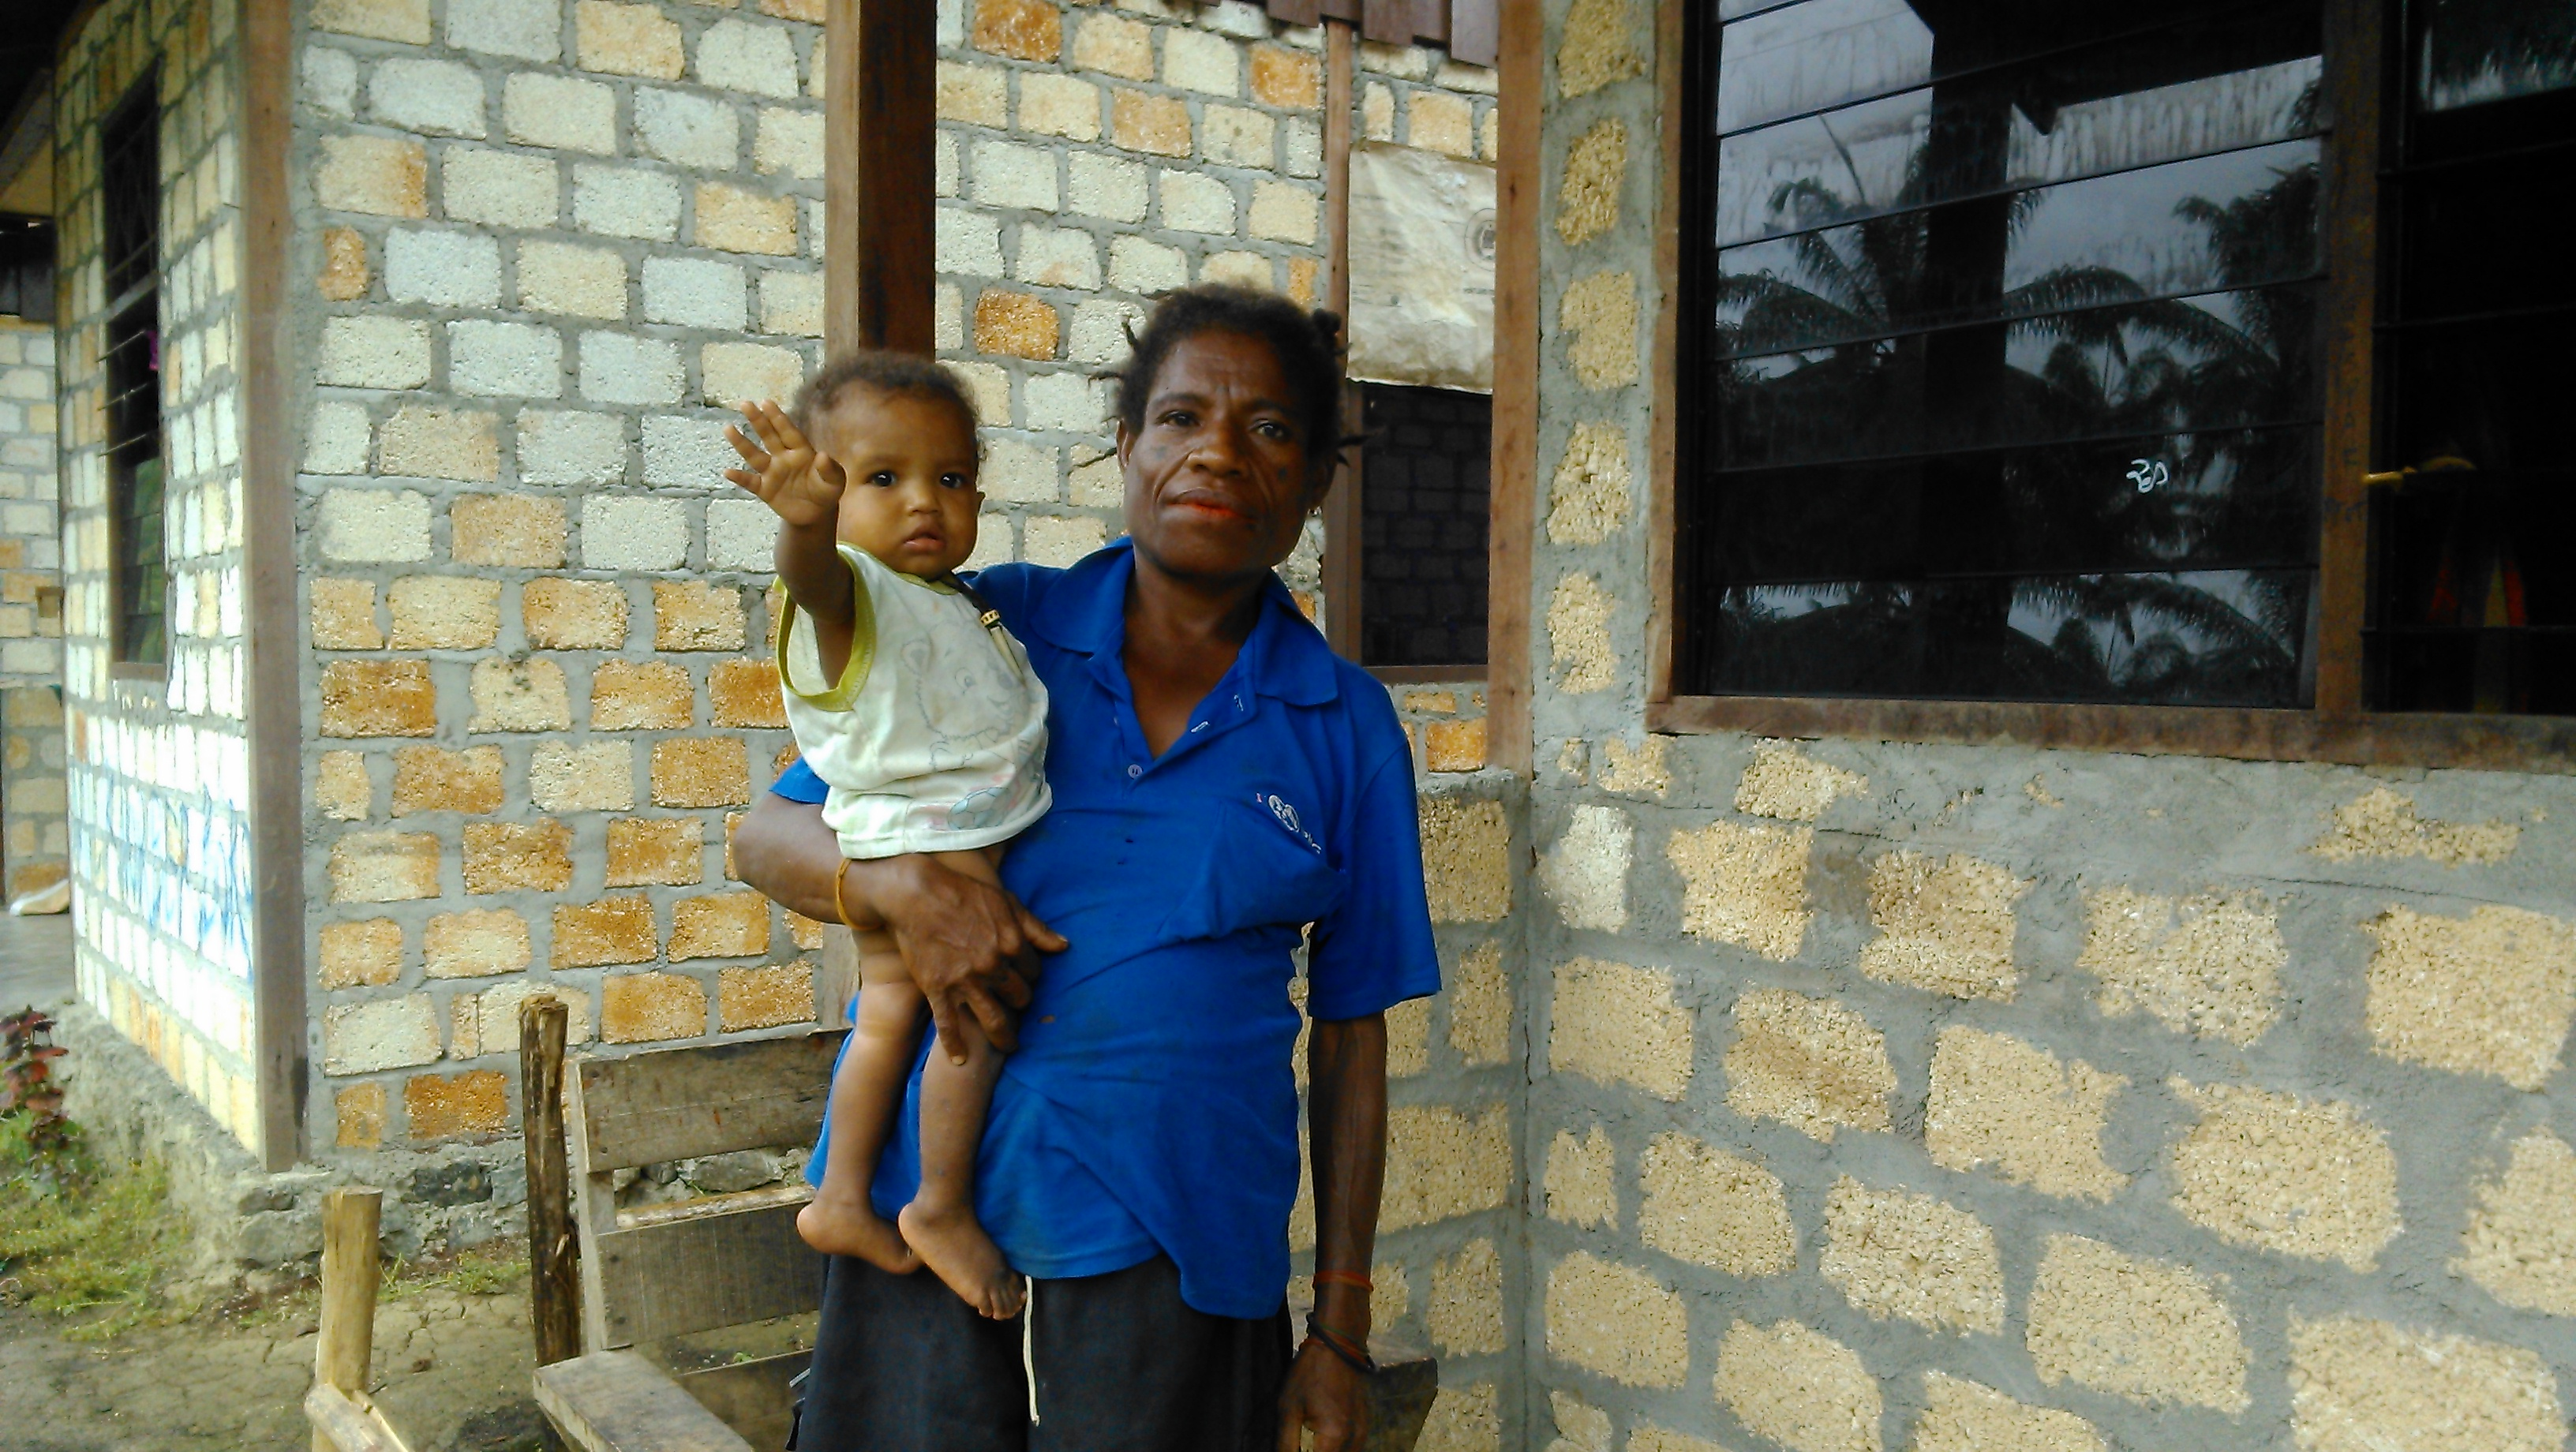 Rose Gilbes fled fighting in Papua province for neighbouring Papua New Guinea whose return home has been inhospitable